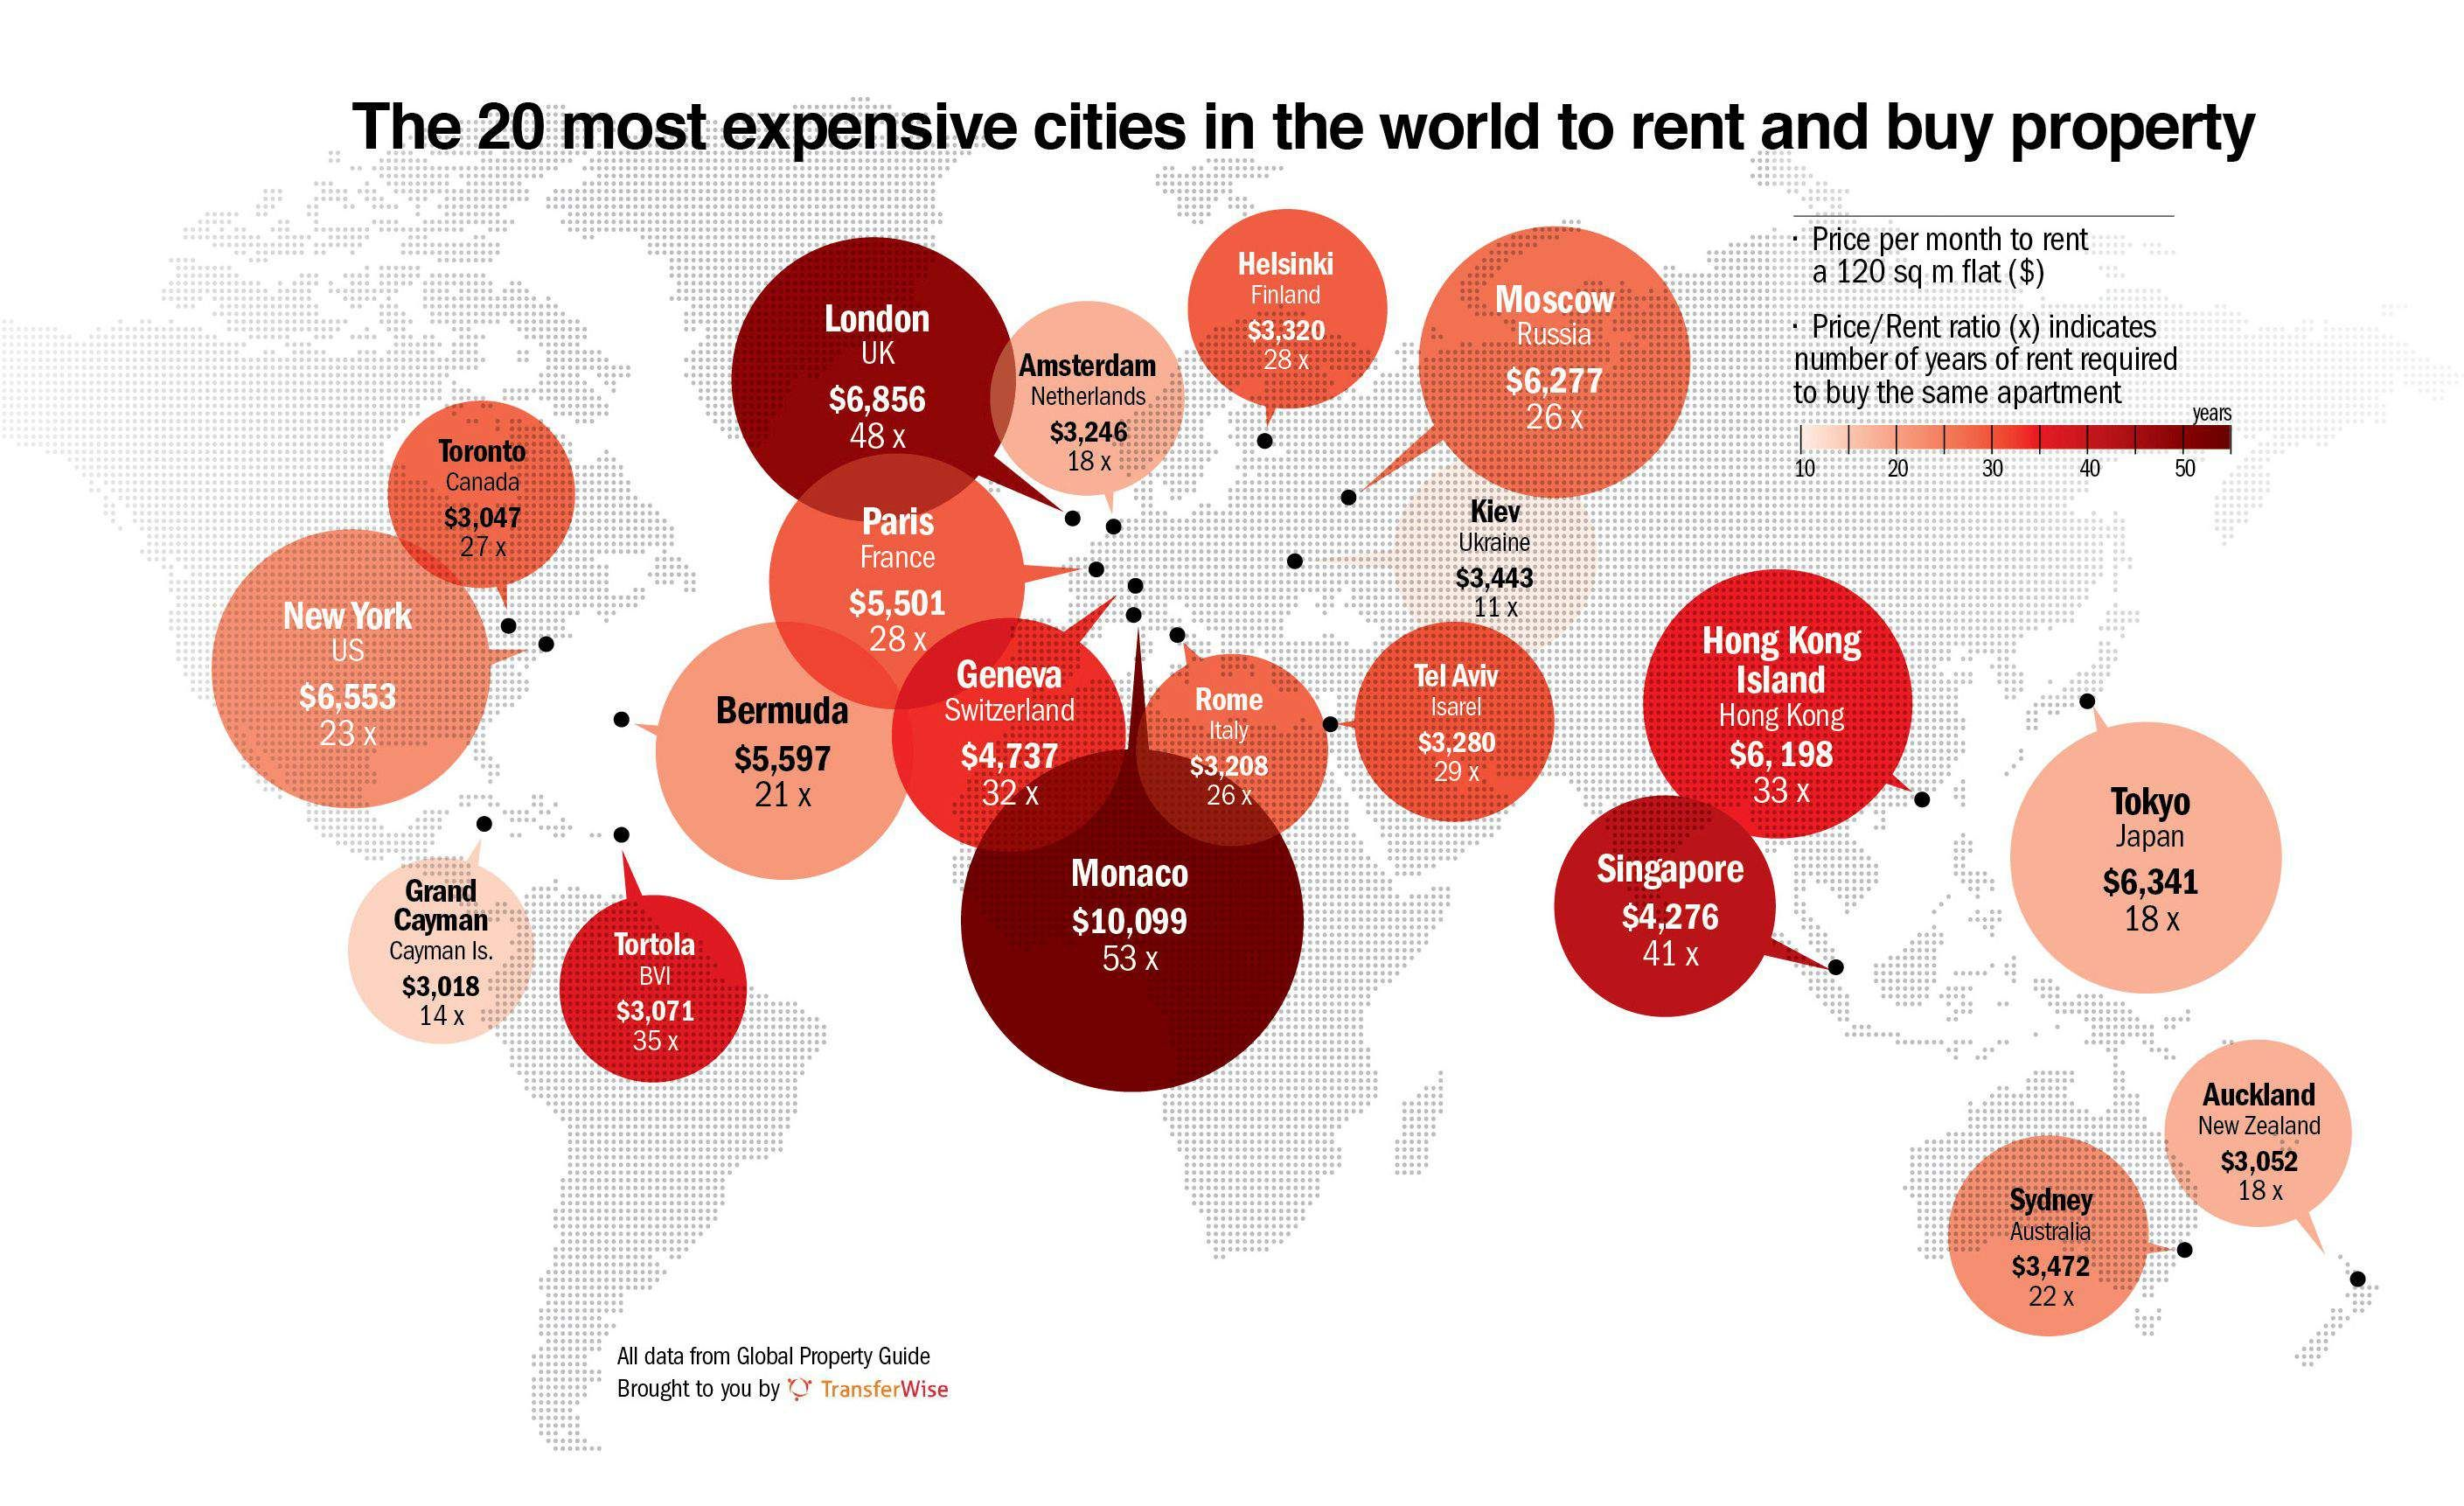 Highest rent in the world. And how many months before it's